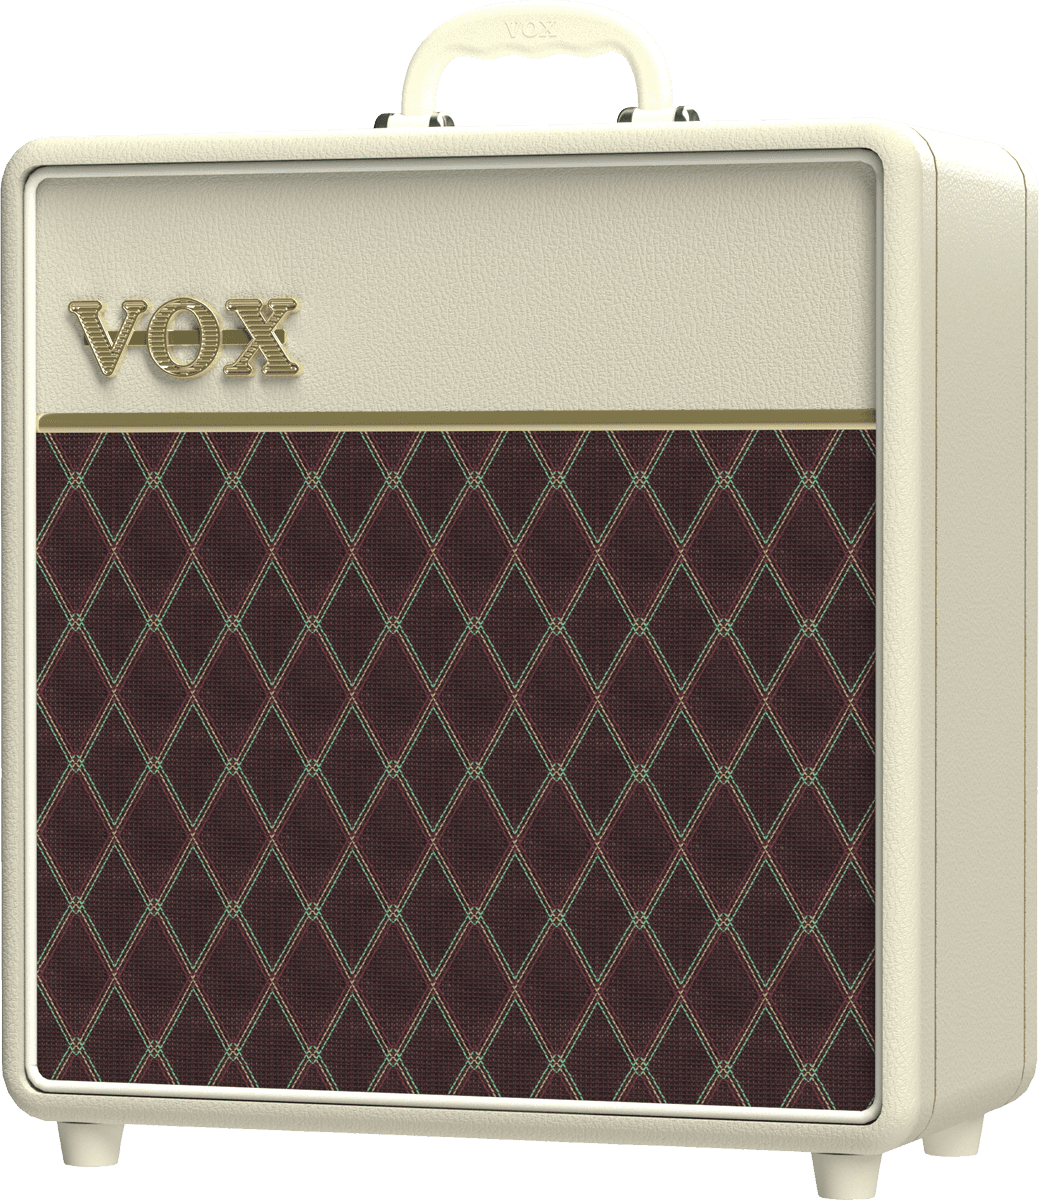 vox ac4c1 12 cb cream electric guitar combo amp star 39 s music. Black Bedroom Furniture Sets. Home Design Ideas